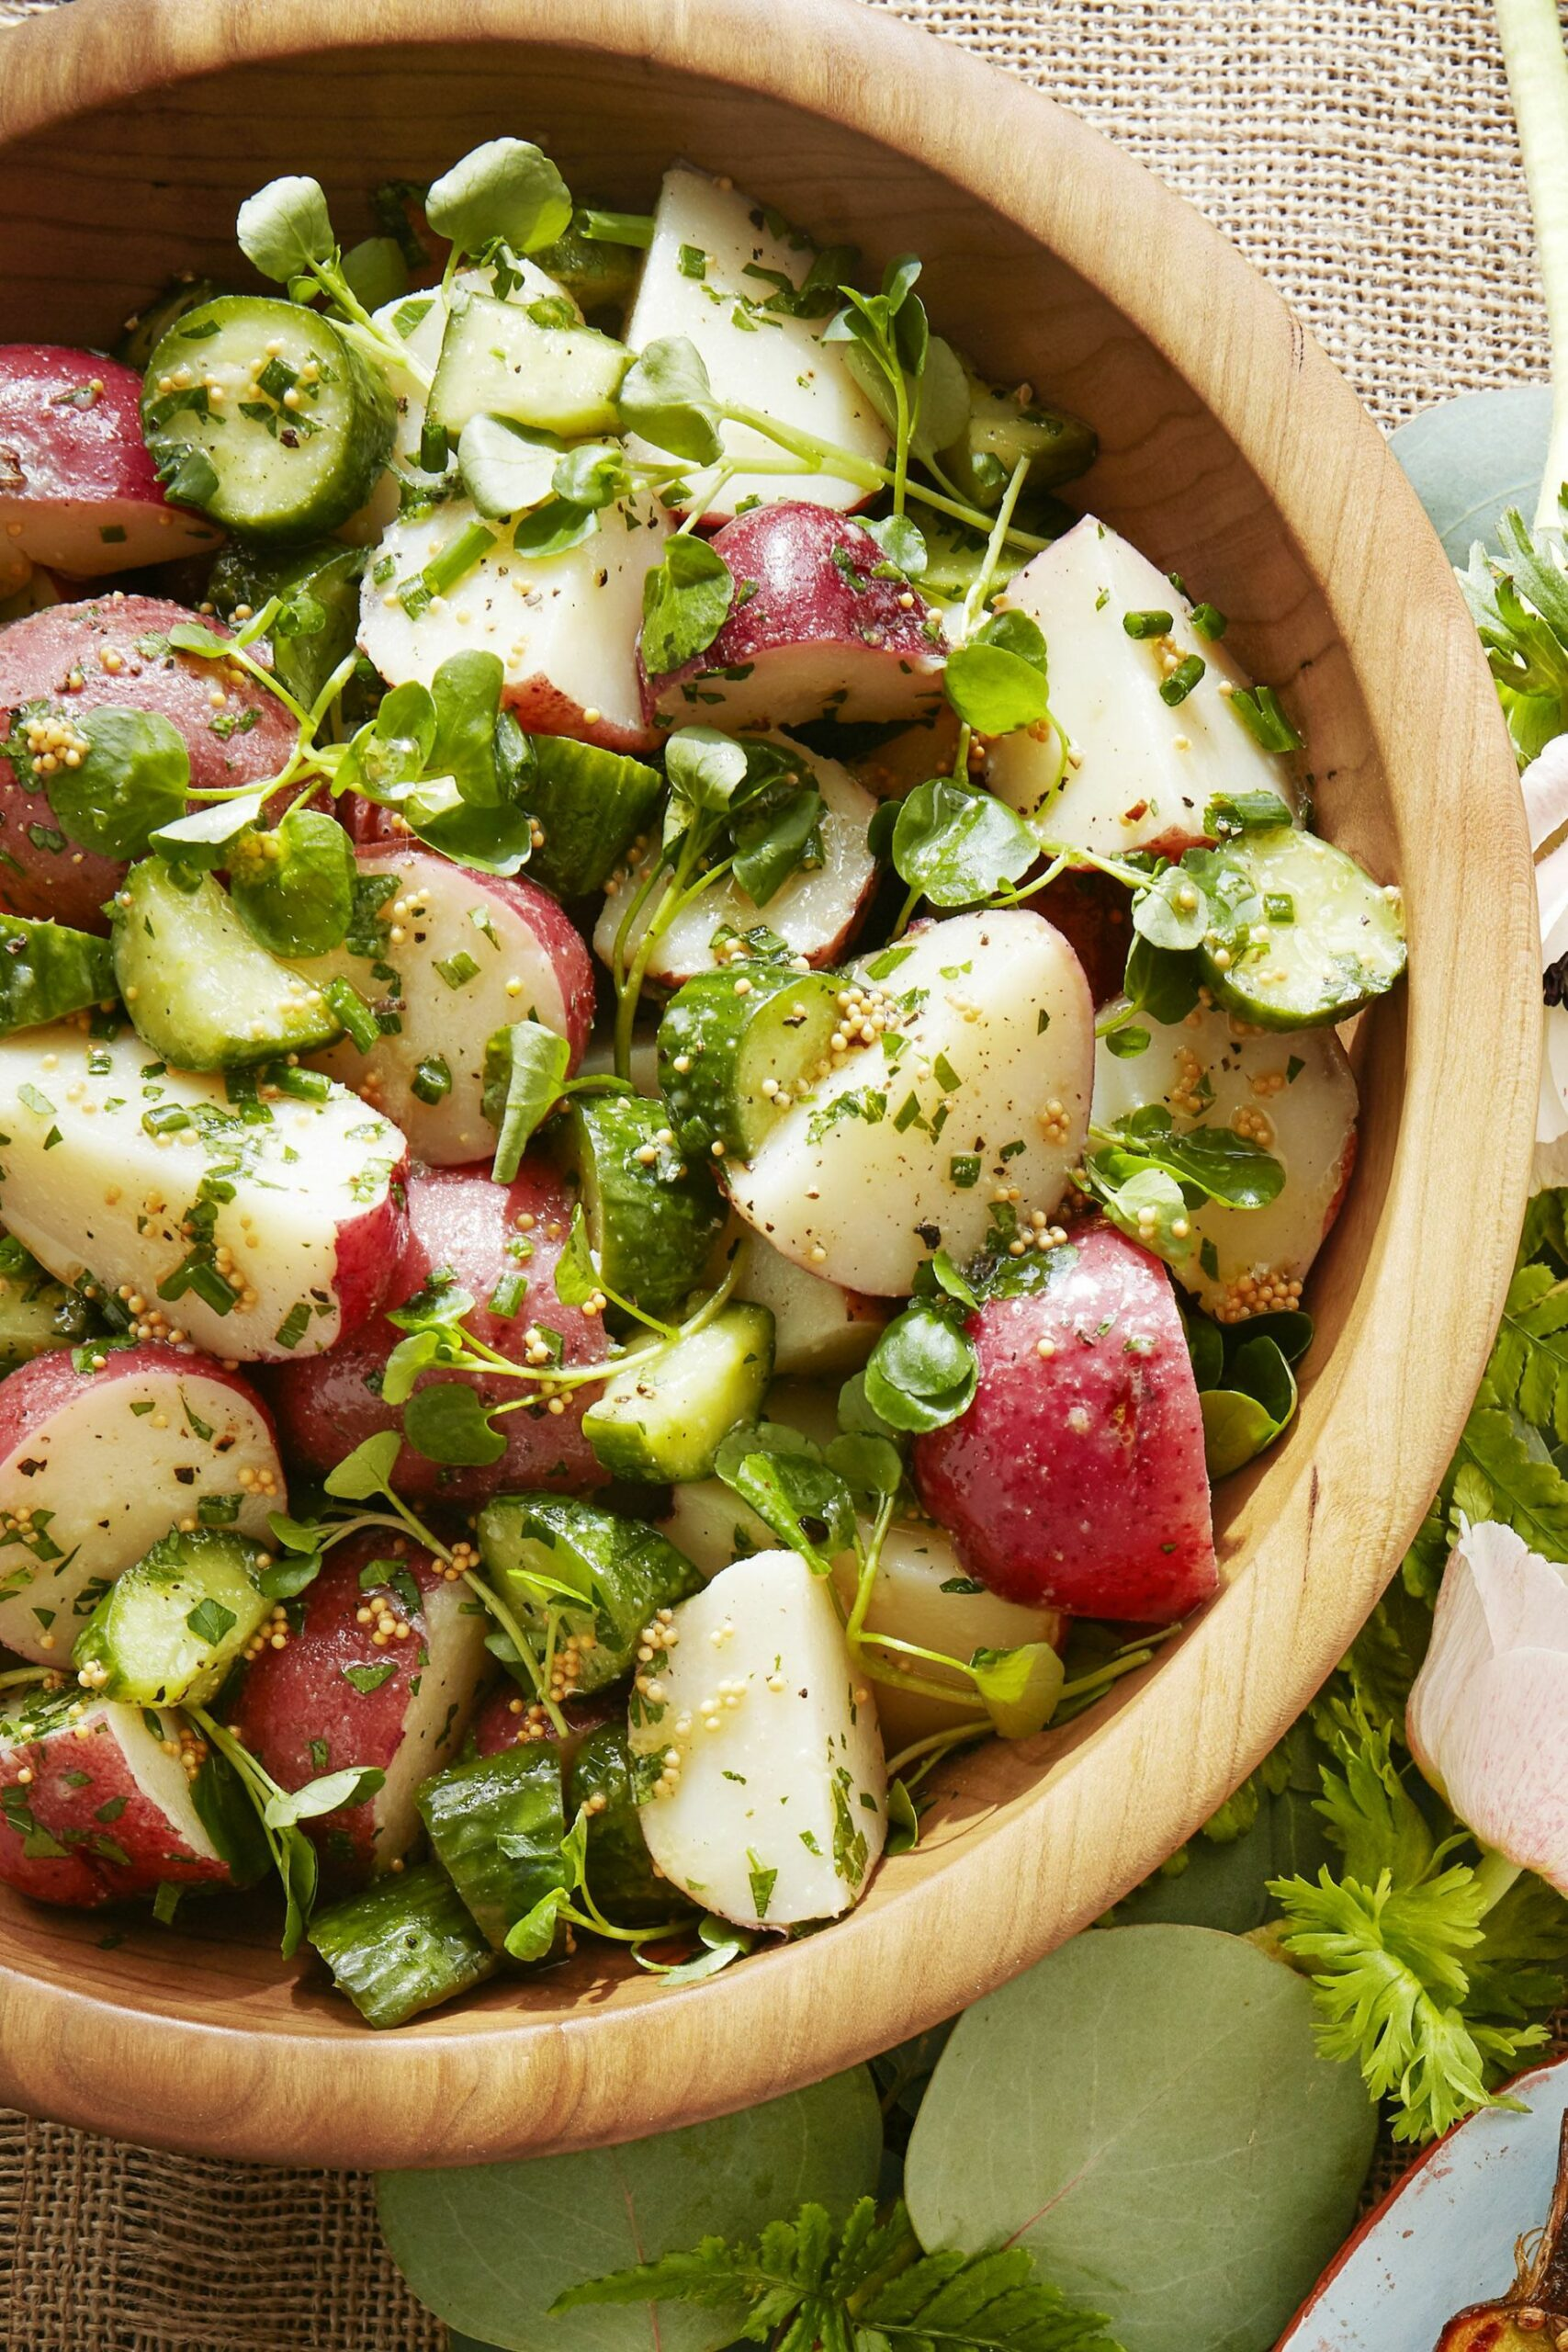 11 Easy Summer Side Dishes - Recipes for Summer Sides - Recipes Summer Side Dishes